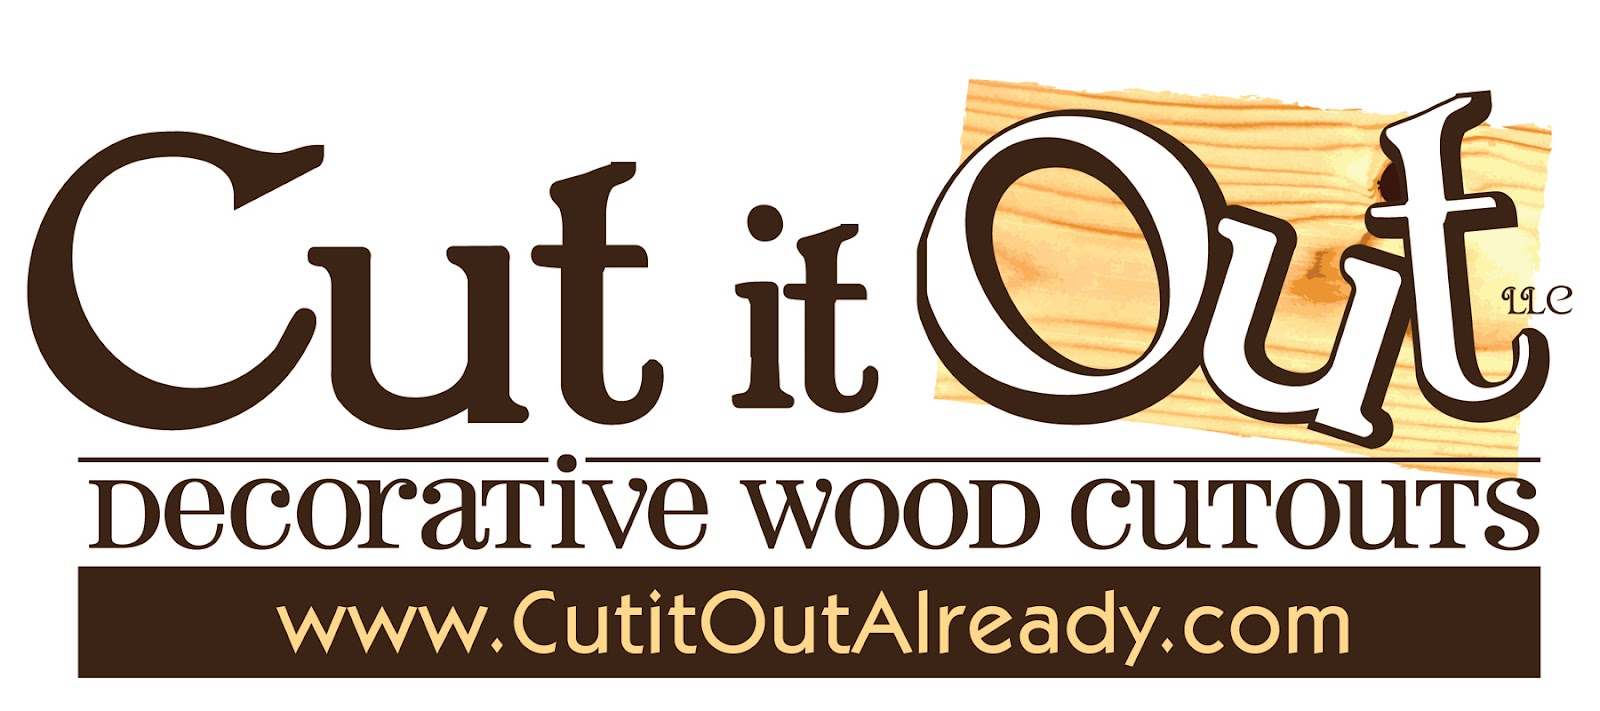 Patterns For Wood Cutouts Best Inspiration Ideas